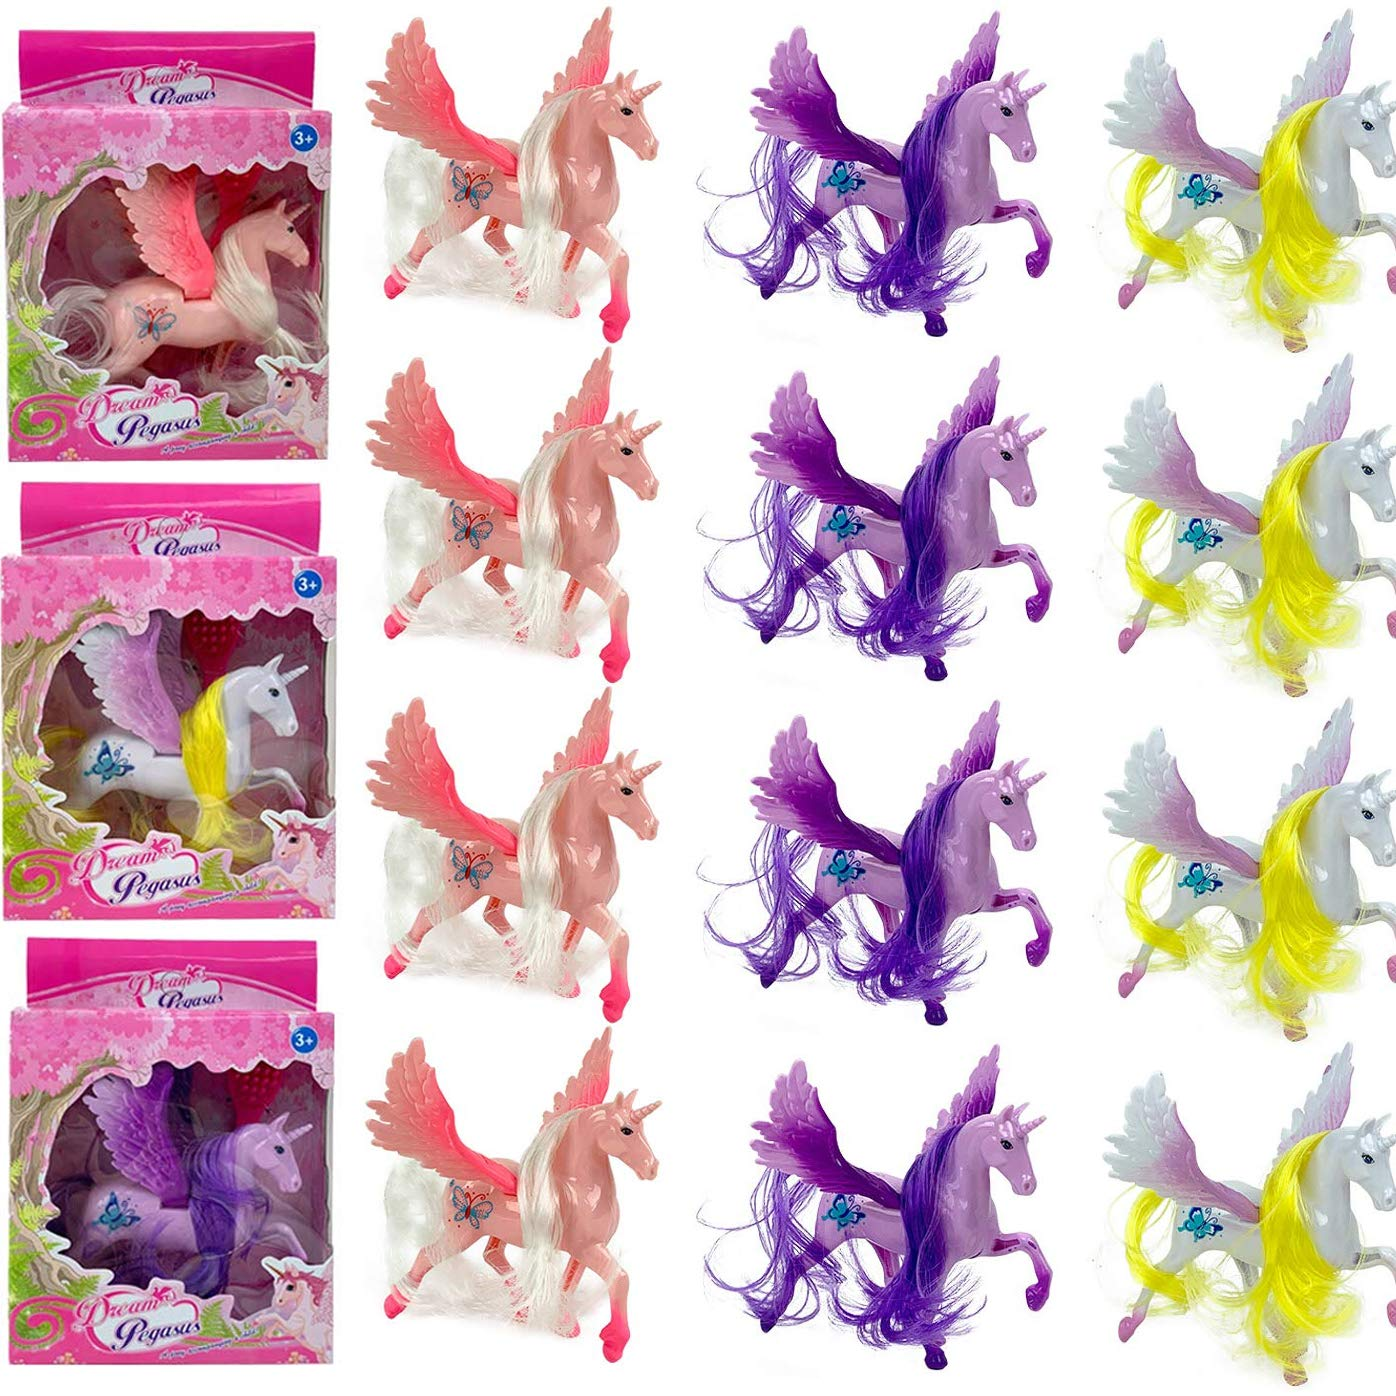 12 Pack - Plastic Large Unicorn Figures Figurine Toys for Girls Party Favors Supplies with Brushable Mane, Tail, and Comb (5 Inch)